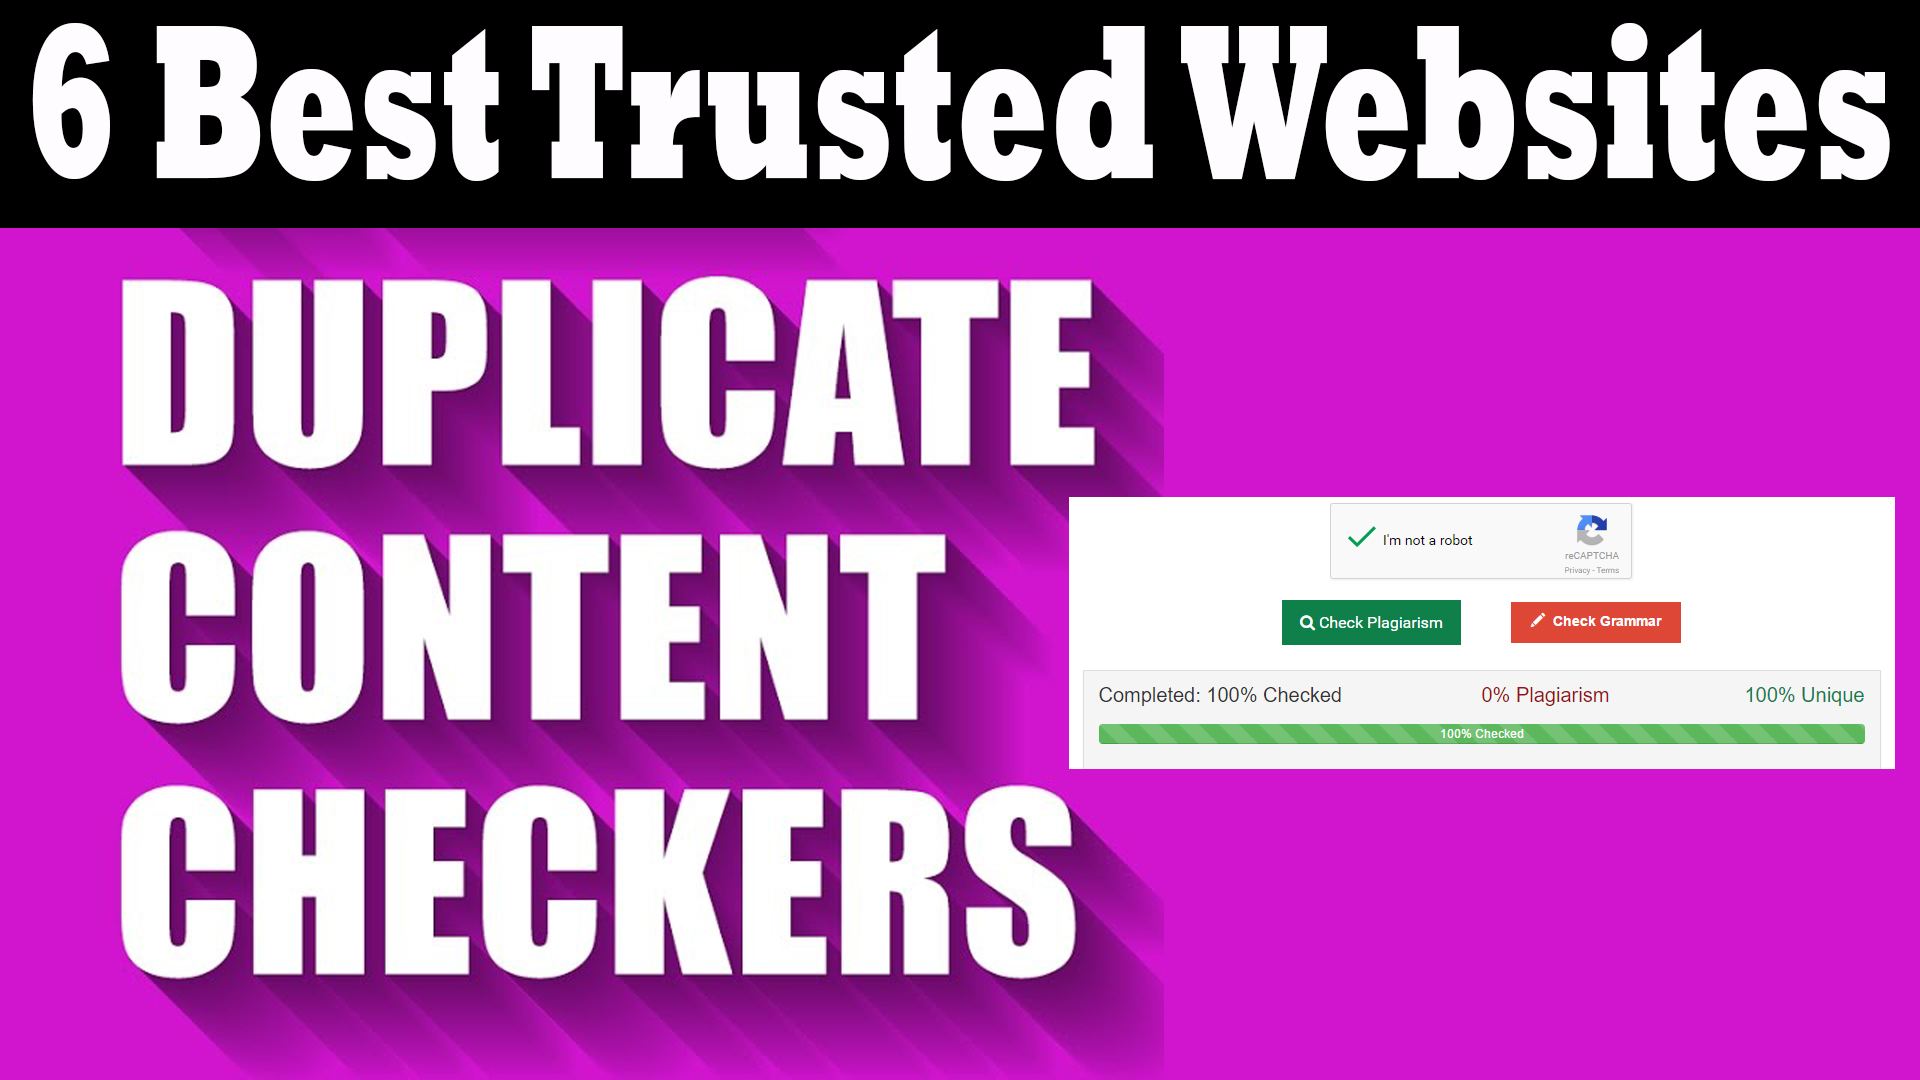 DUPLICATE CONTENT CHECKER WEBSITE - 6 BEST TRUSTED SITES